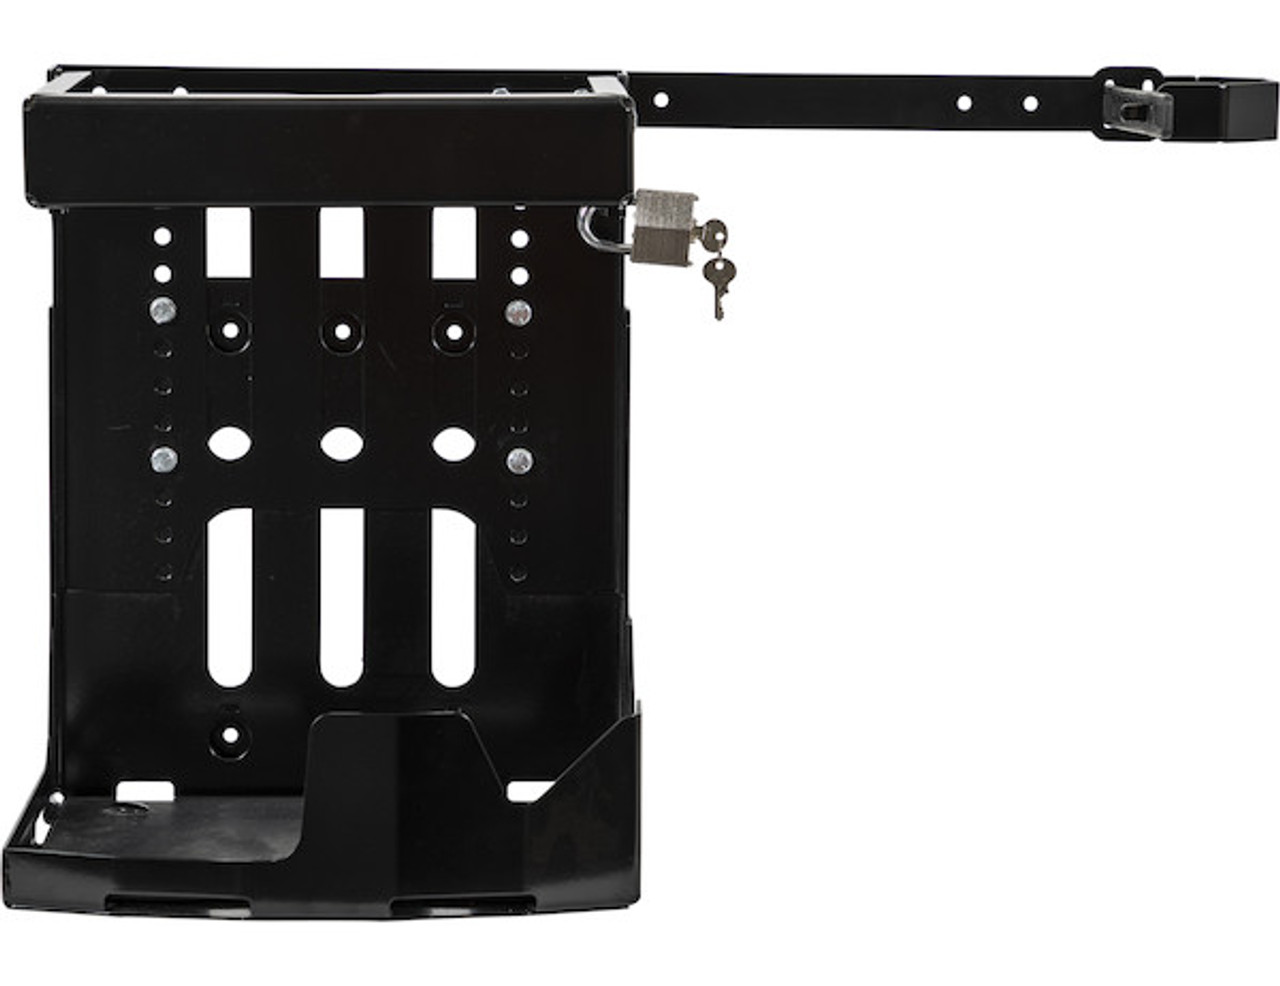 Buyers LT24 Adjustable Backpack Blower Rack For Open And Enclosed Landscape Trailers Picture # 6